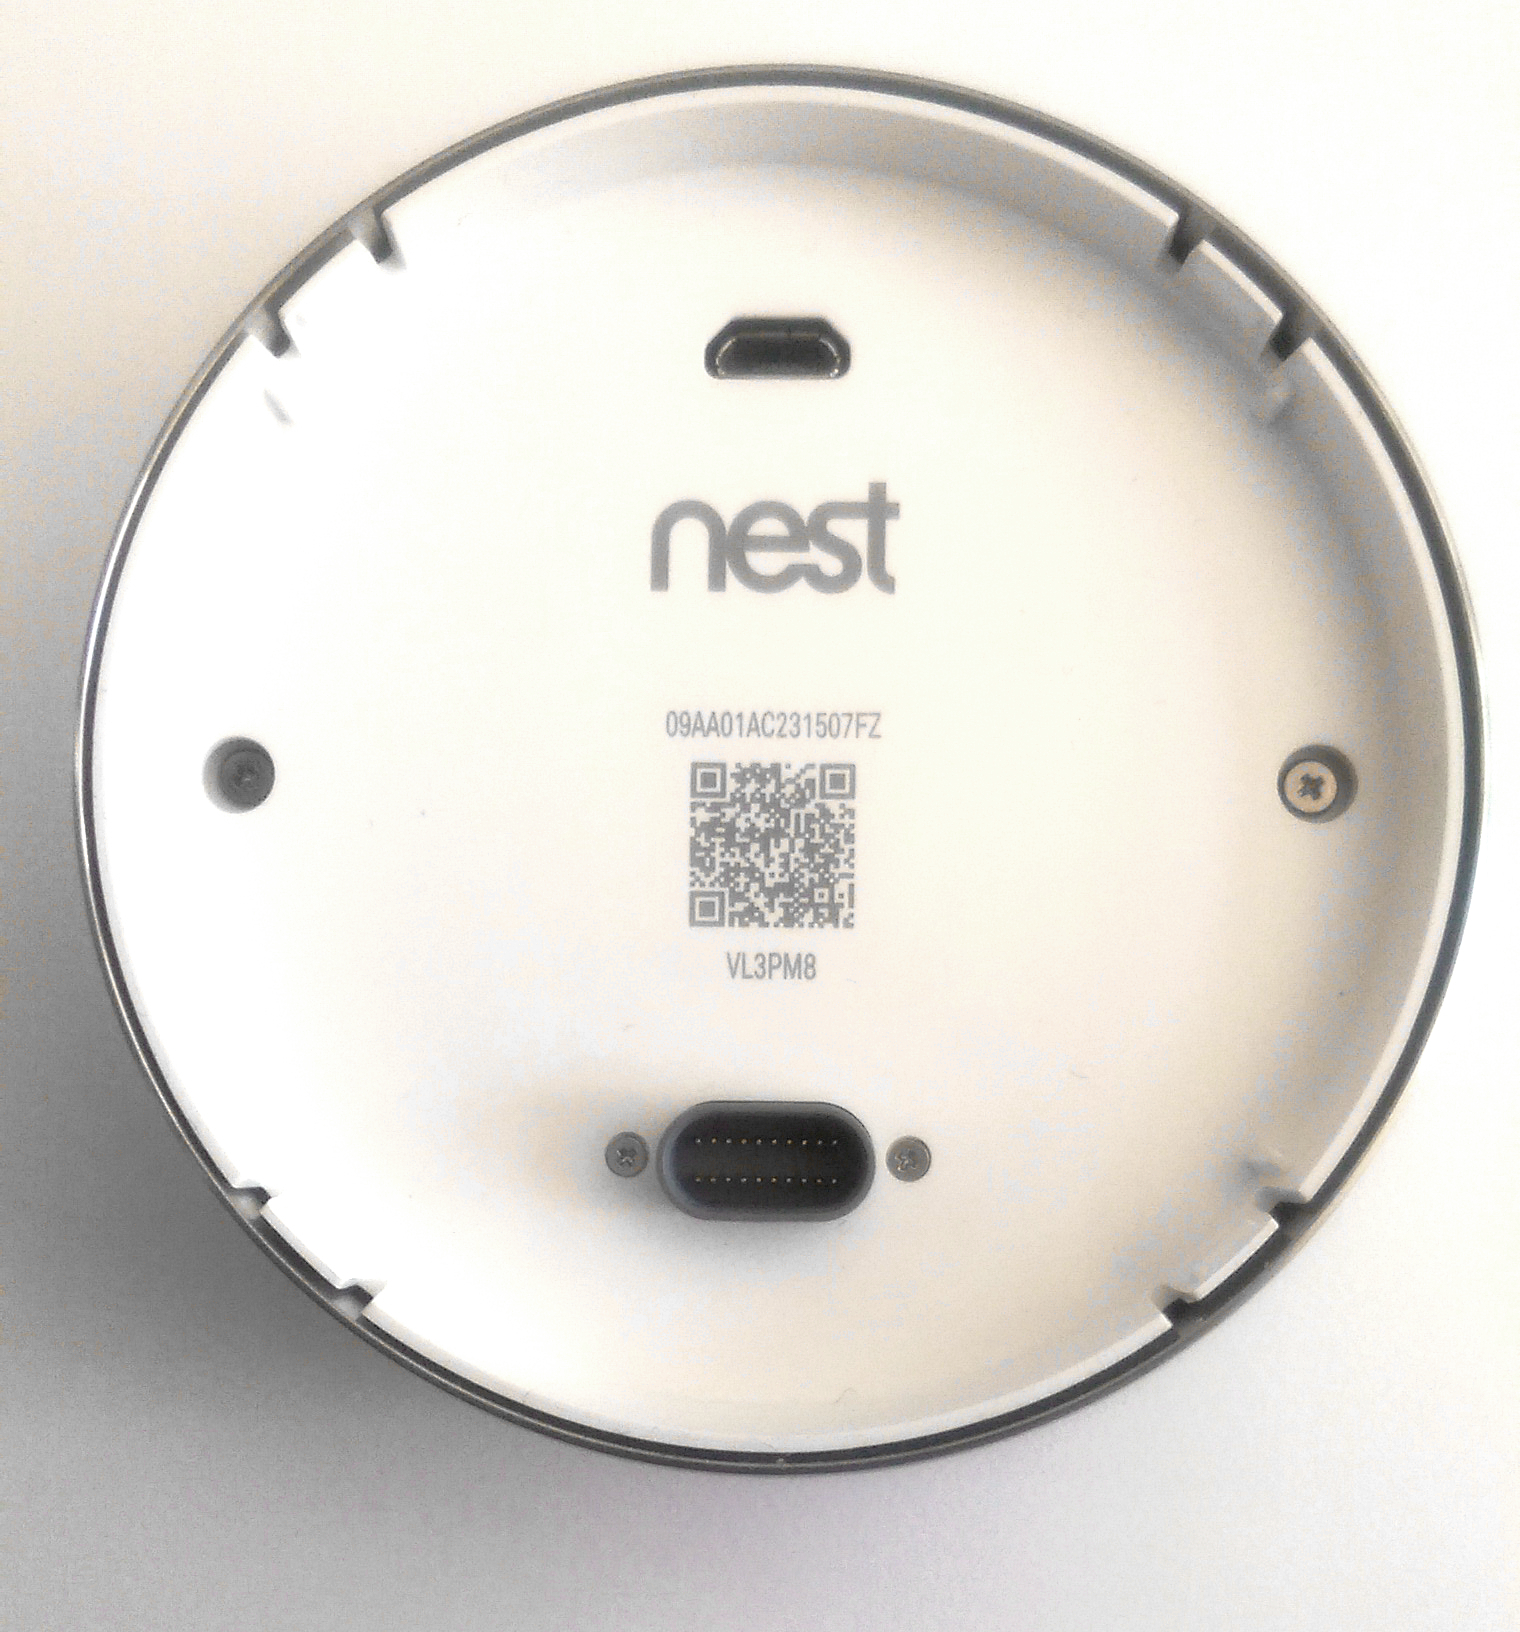 Nest Learning Thermostat Advanced Installation And Setup Help For Heat Pump Wiring Guide You Can Also Find The Serial Number By Going To Settings Technical Info Display On